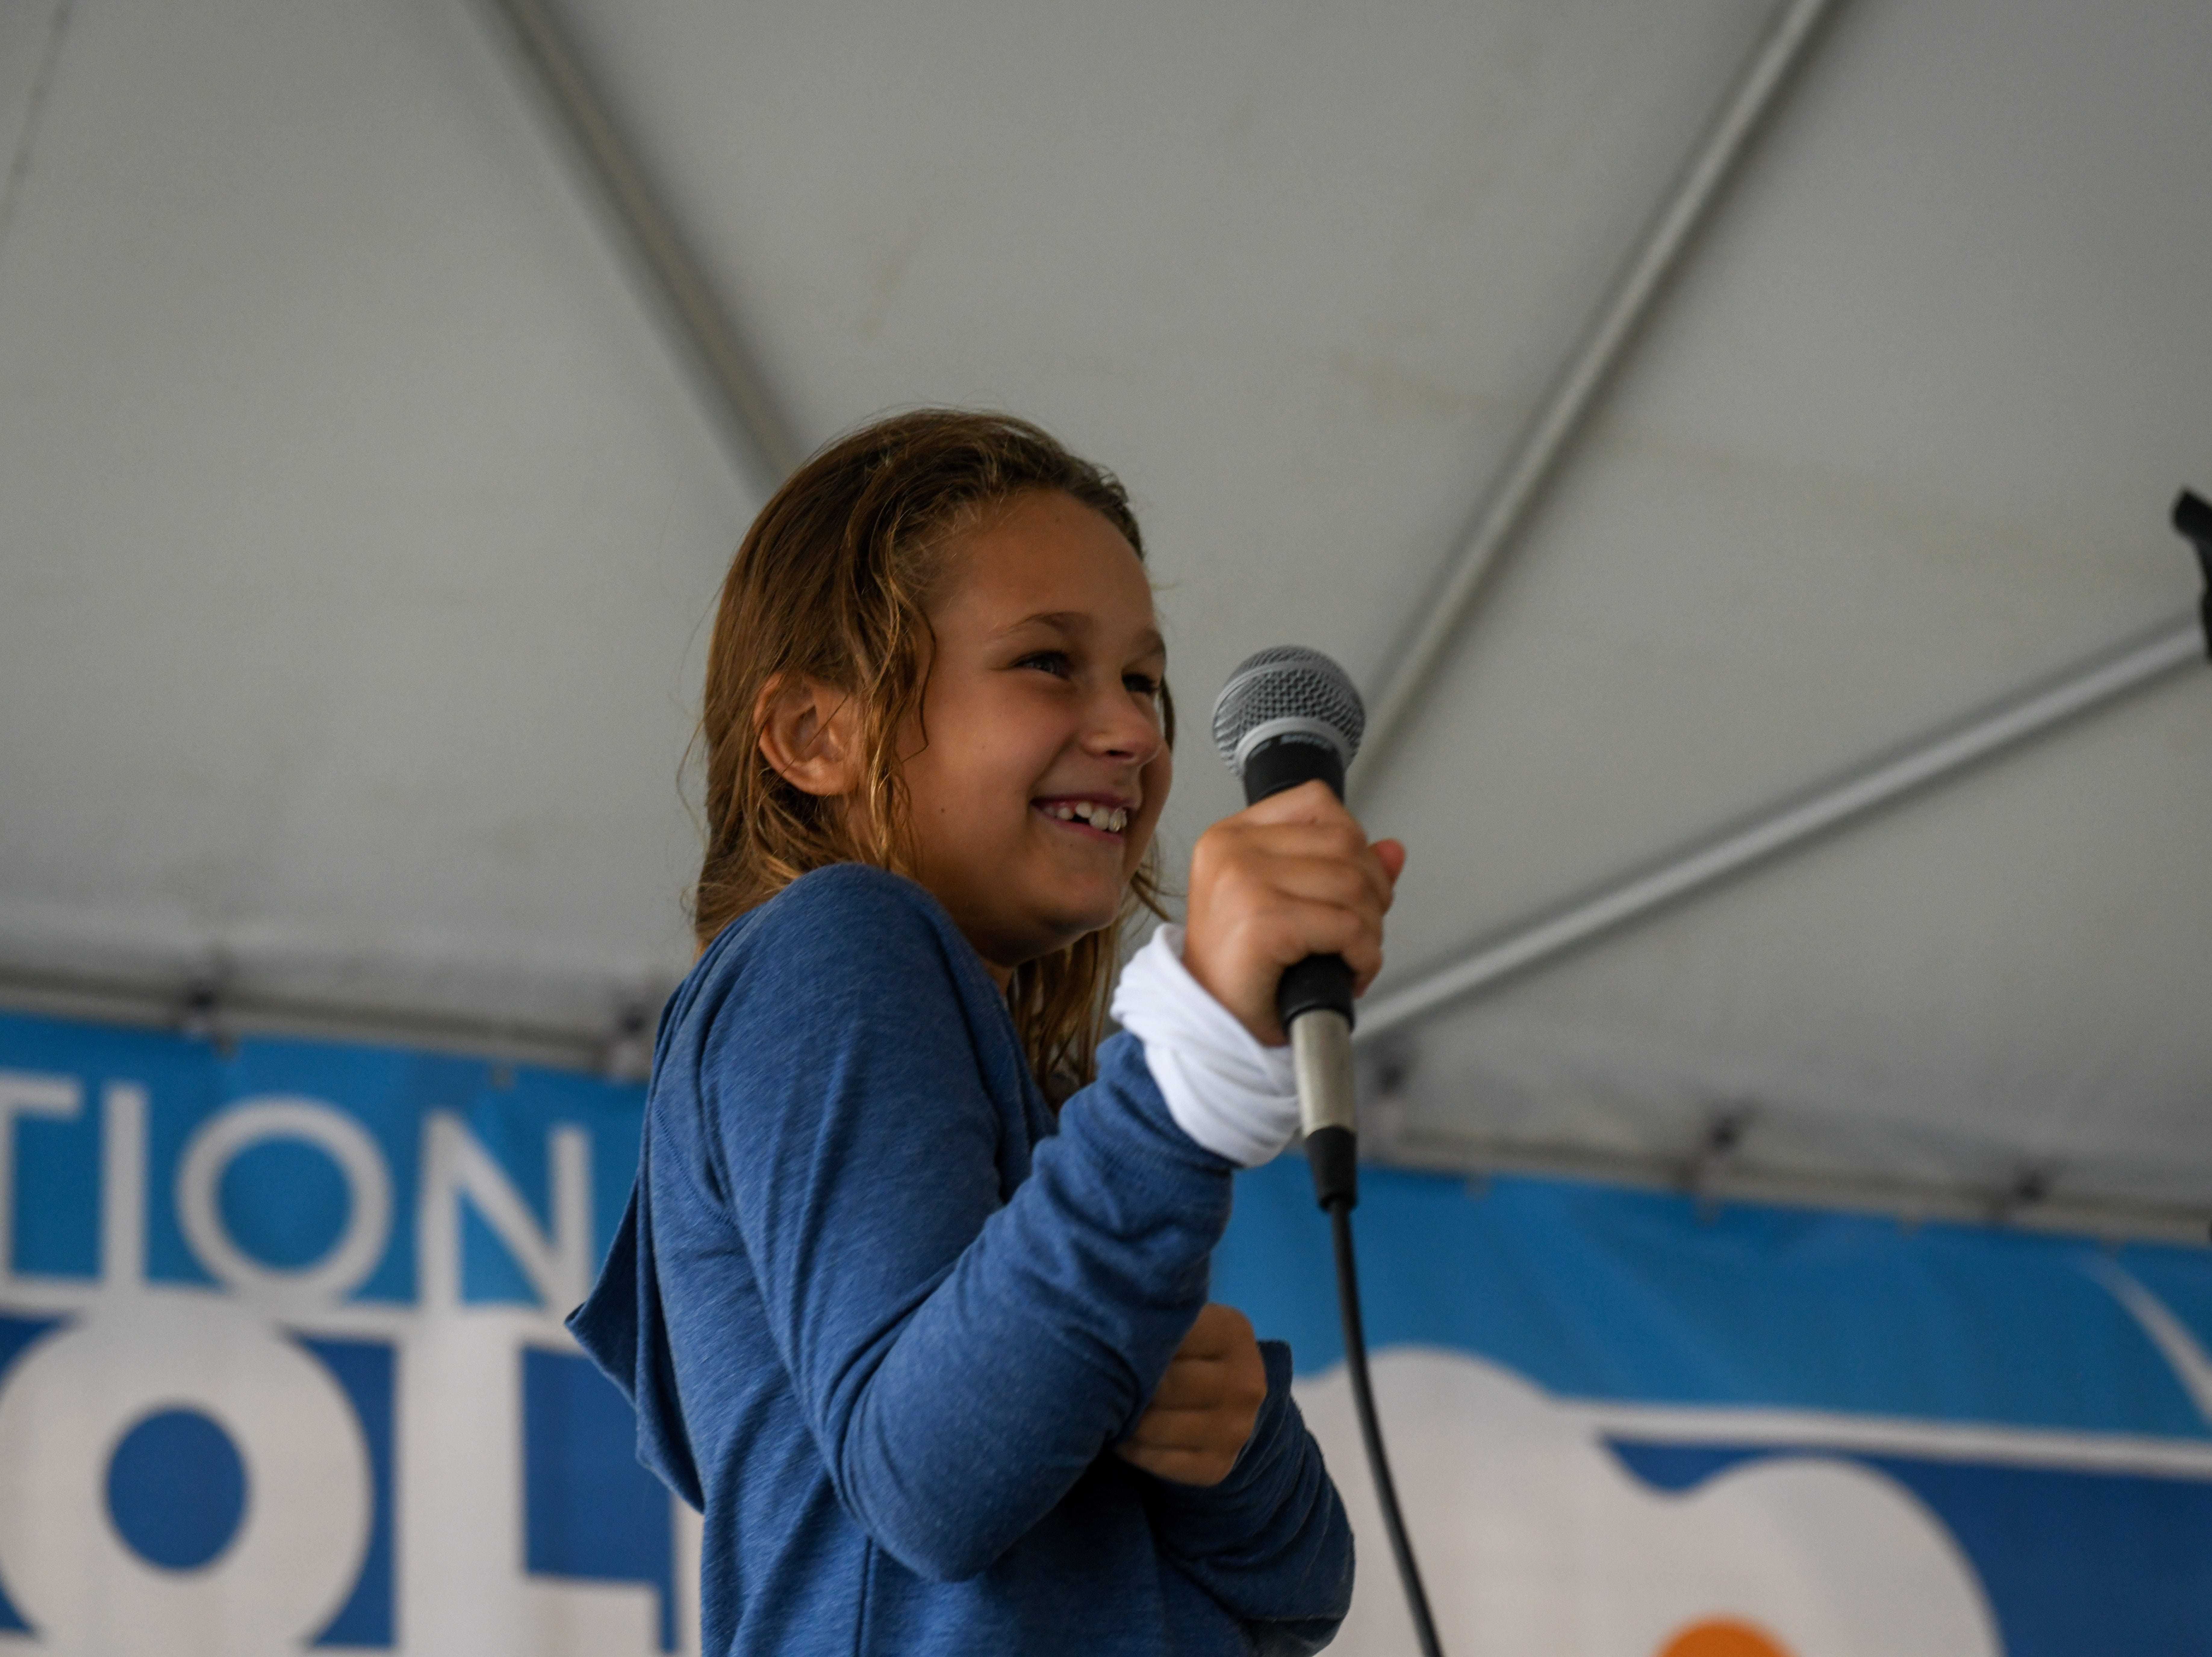 8-year-old Gracie Seman learns to beatbox with performer Shodekeh at the National Folk Fest in Salisbury on Sunday, Sept. 9.